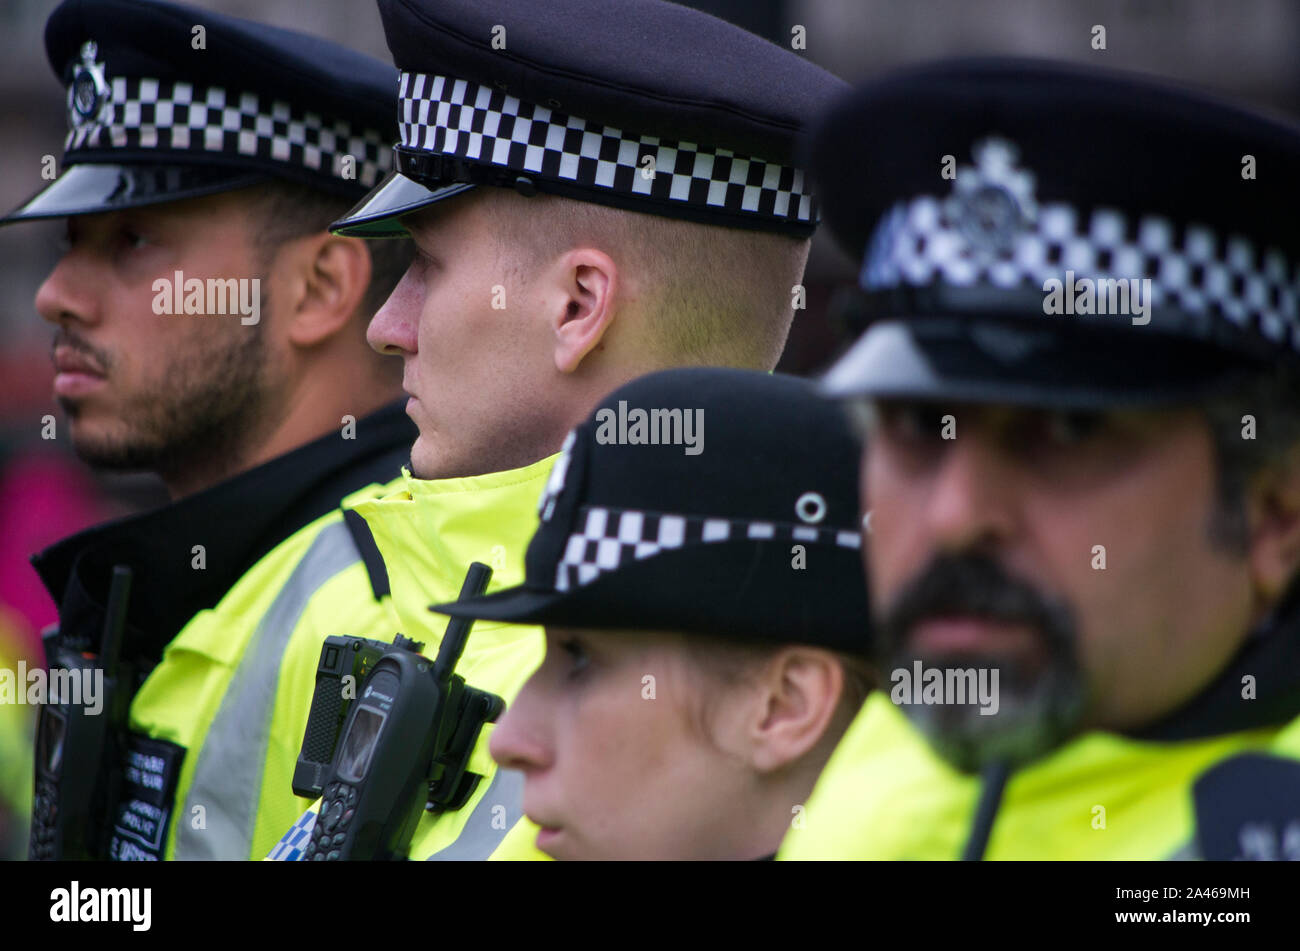 London, UK. 11 October 2019. Metropolitan Police officers keep climate change protestors off roads around Trafalgar Square, London. Extinction Rebellion, were still occupying Trafalgar Square despite many of their campsites around Westminster being removed by police. The group have been involved in non-violent civil disobedience. Over 1,000 arrests were made during the first week of protests. 500 officers were drafted in from around England and Wales to help support the Metropolitan police. Stuart Walden / Alamy Stock Photo